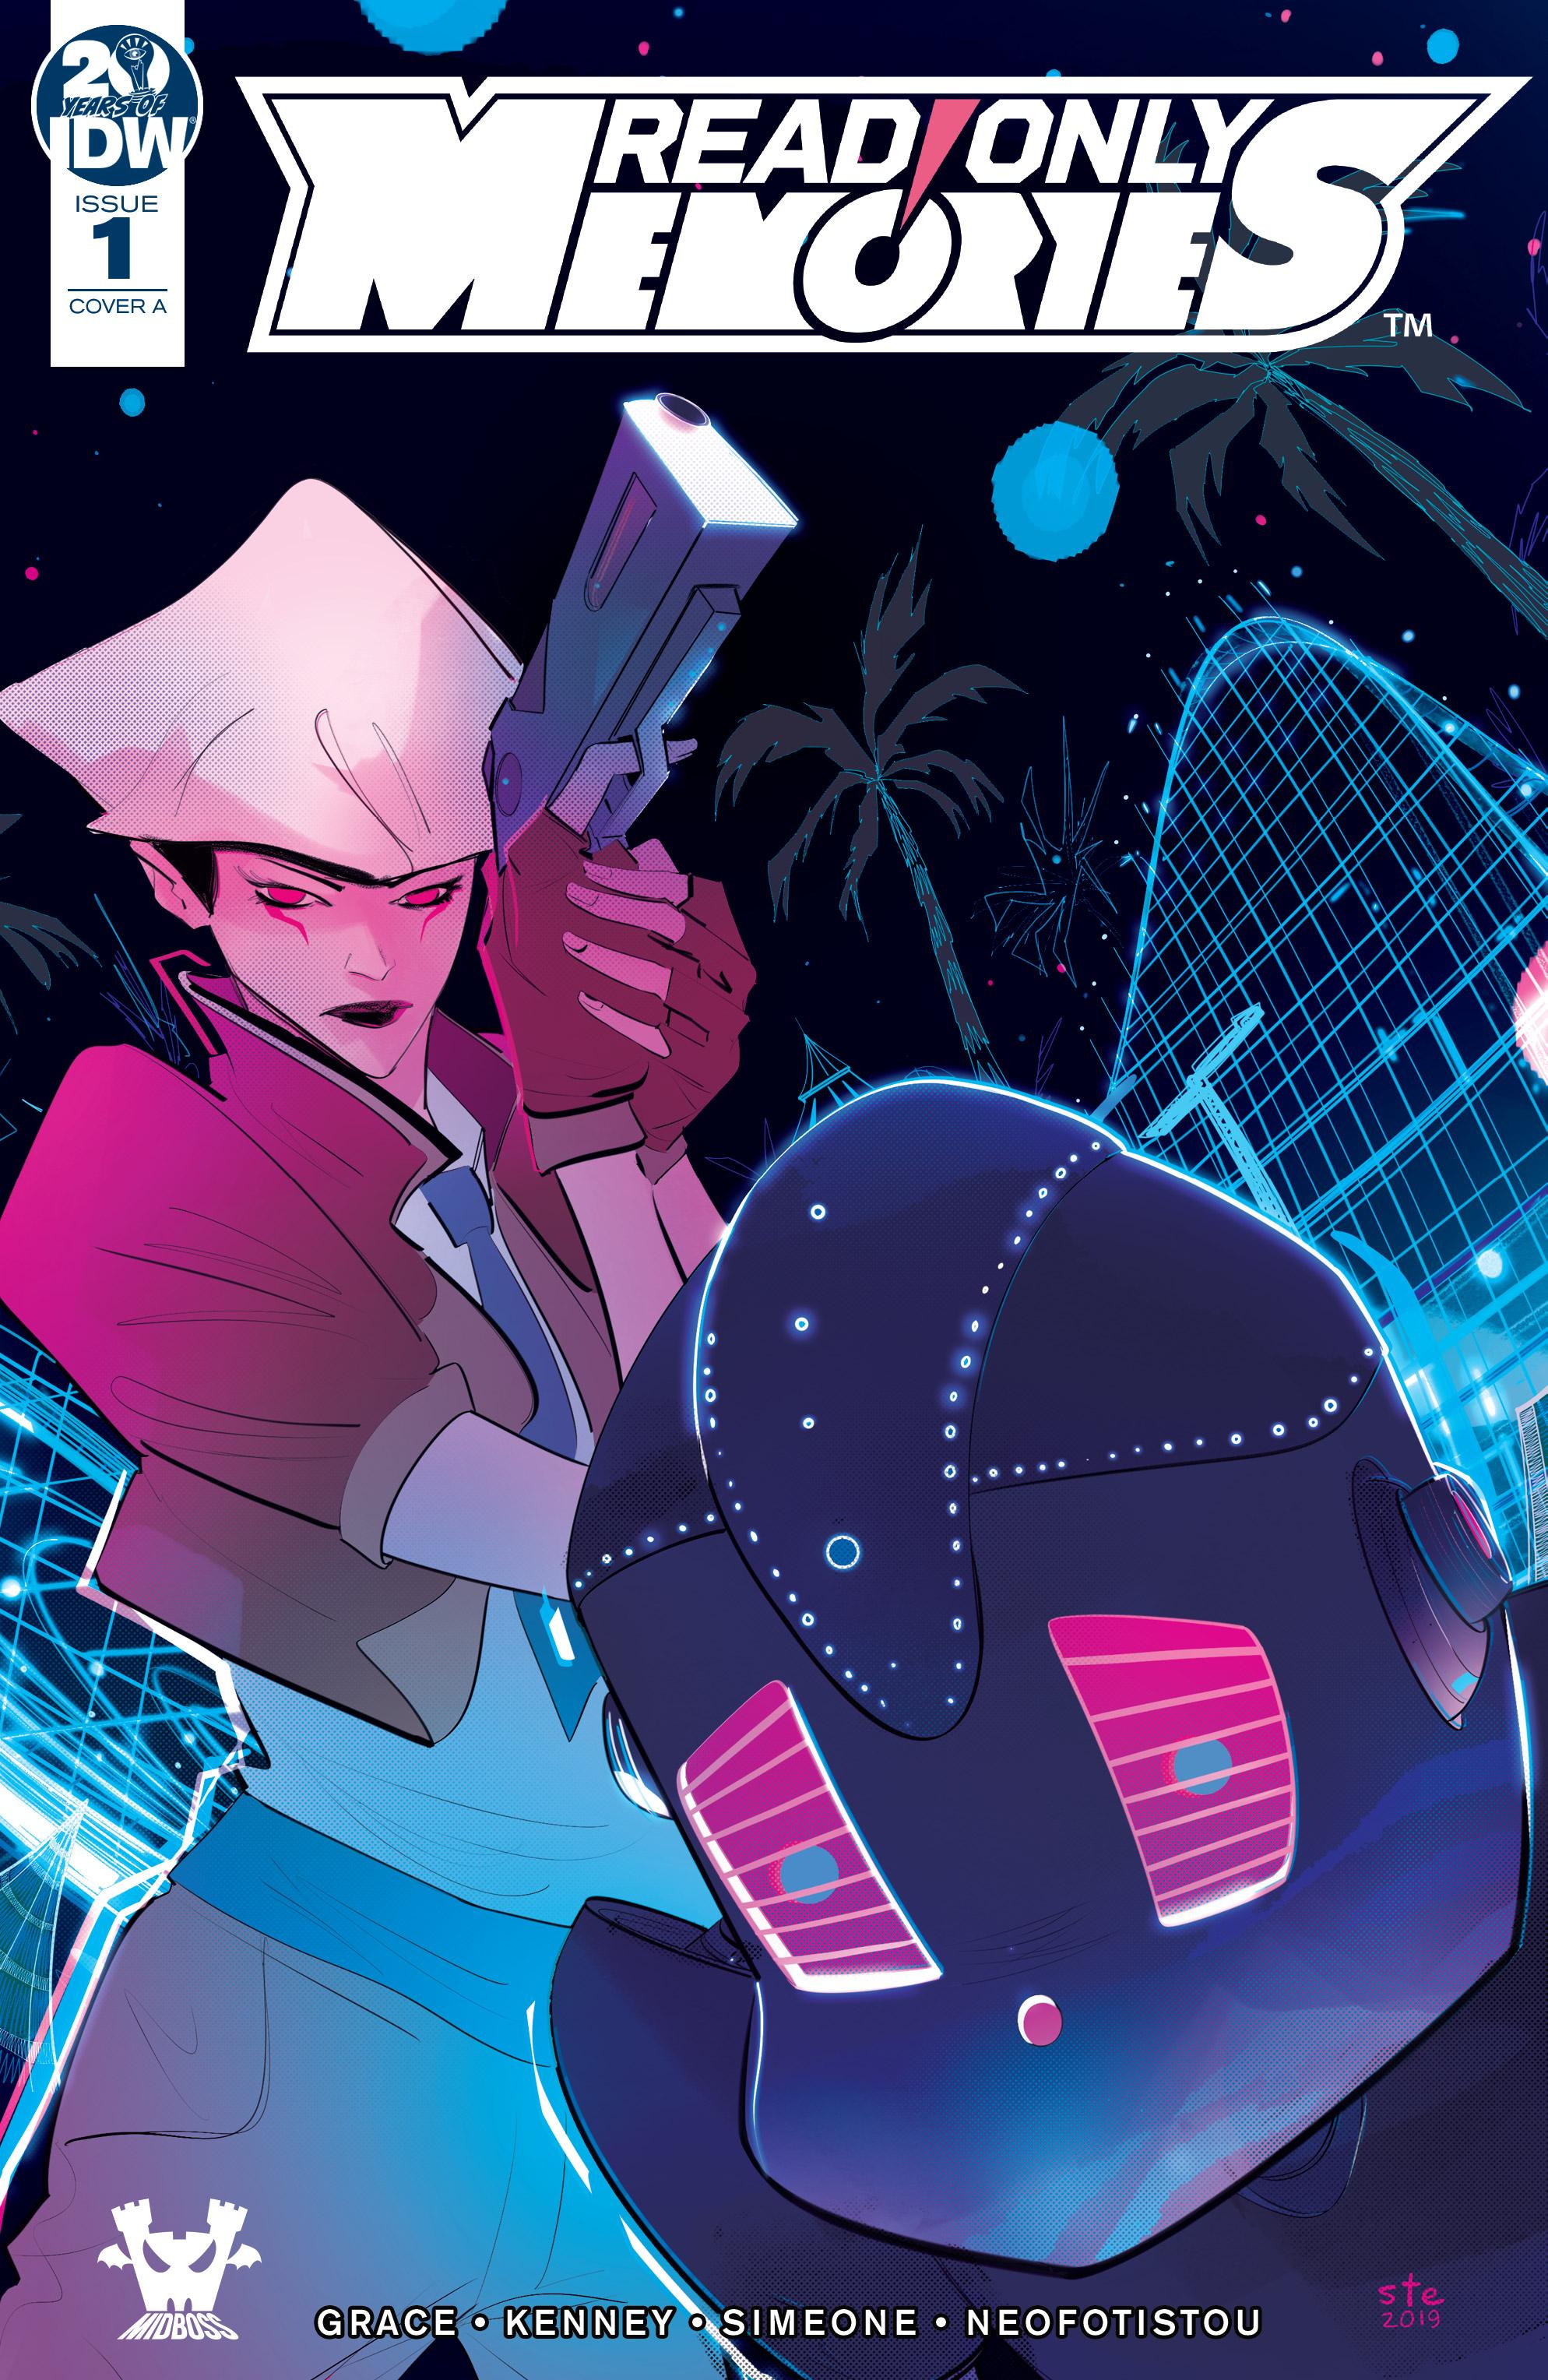 Read Only Memories 001 2019 Digital Pirate